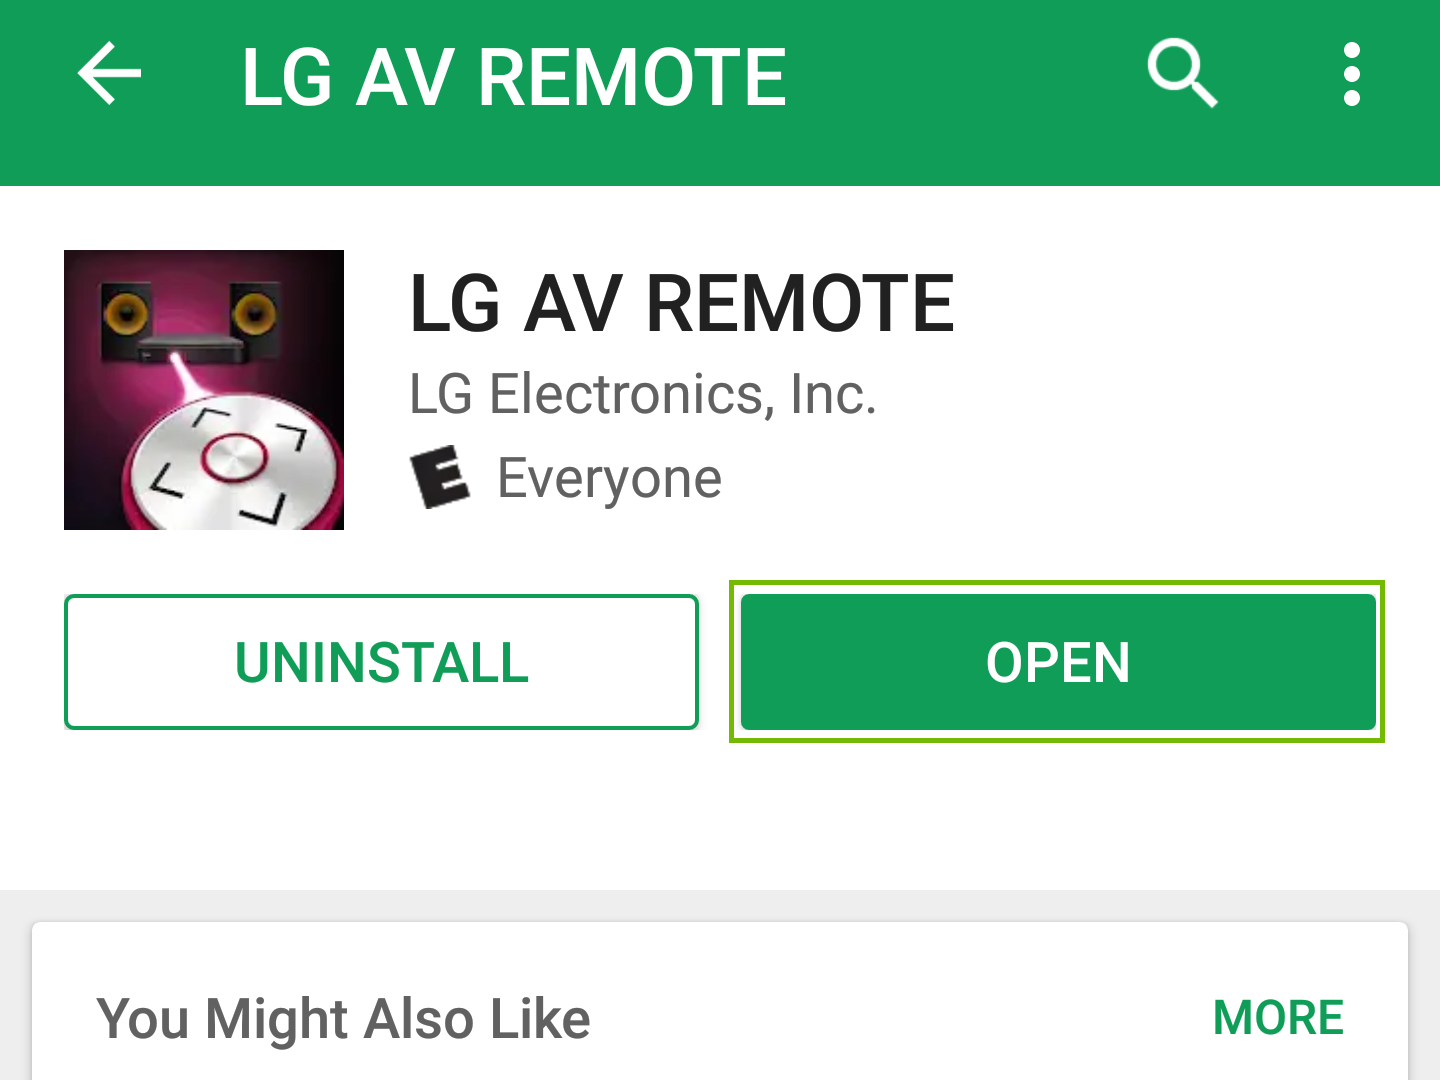 LG AV Remote stor page with open highlighted